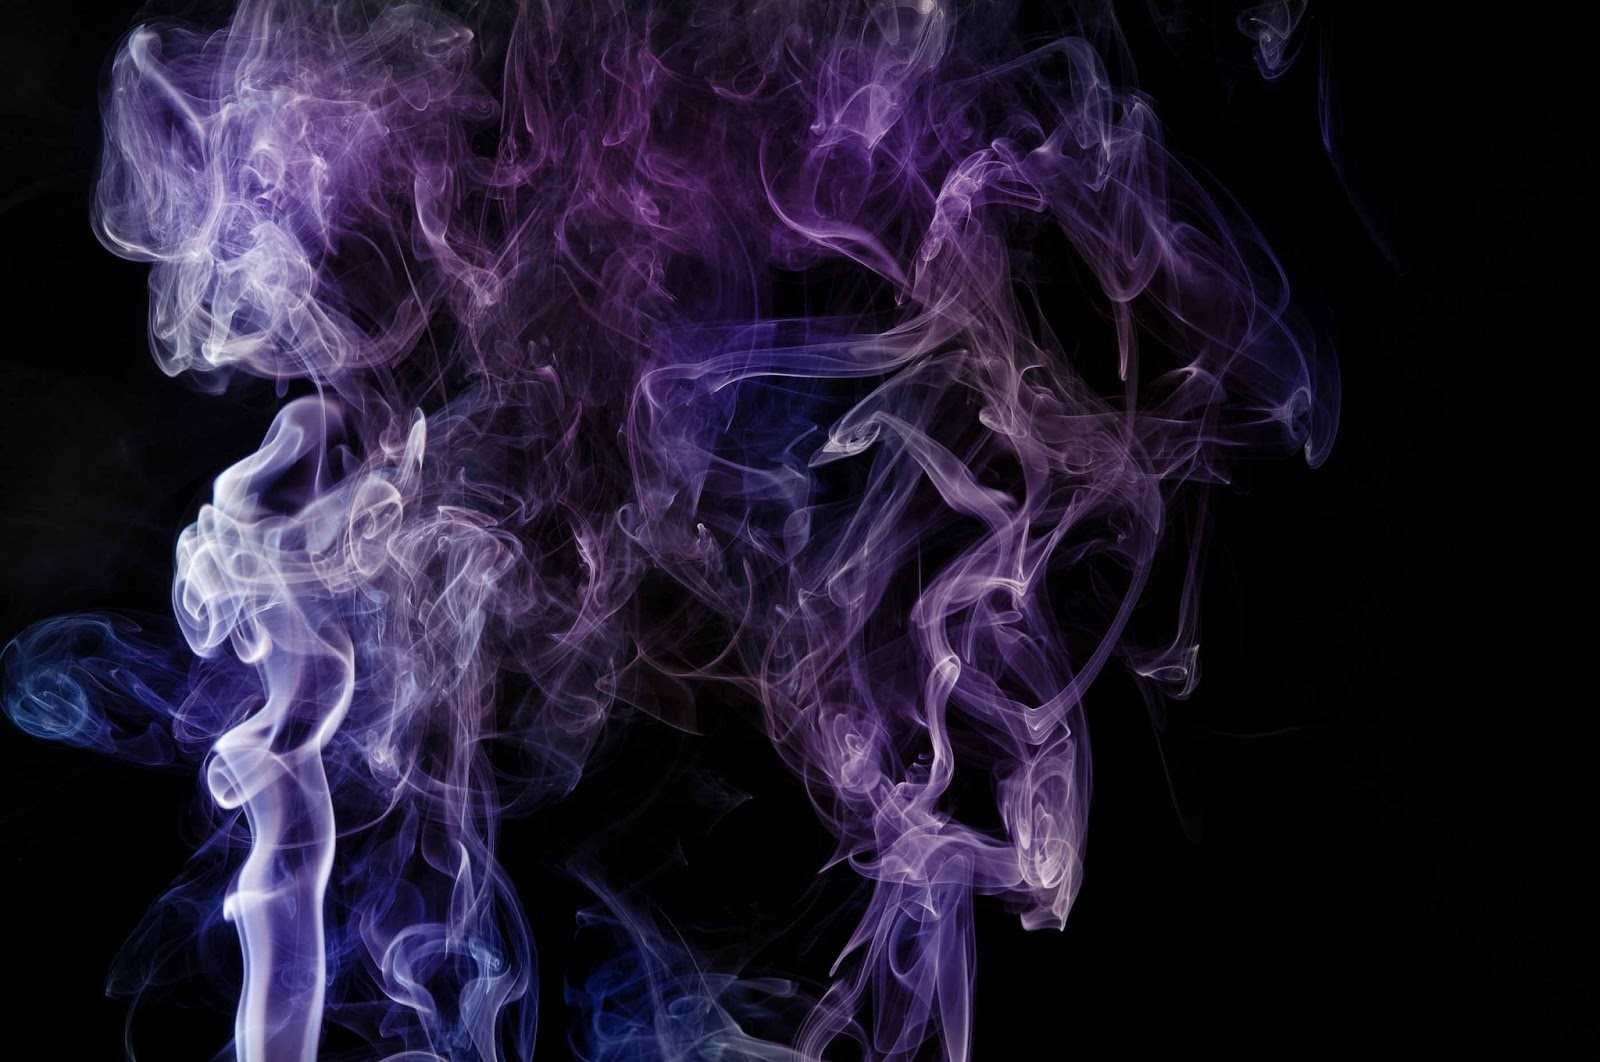 Black Aesthetic Wallpaper Violet Smoke Art Wallpapers Hd Wallpapers Pics